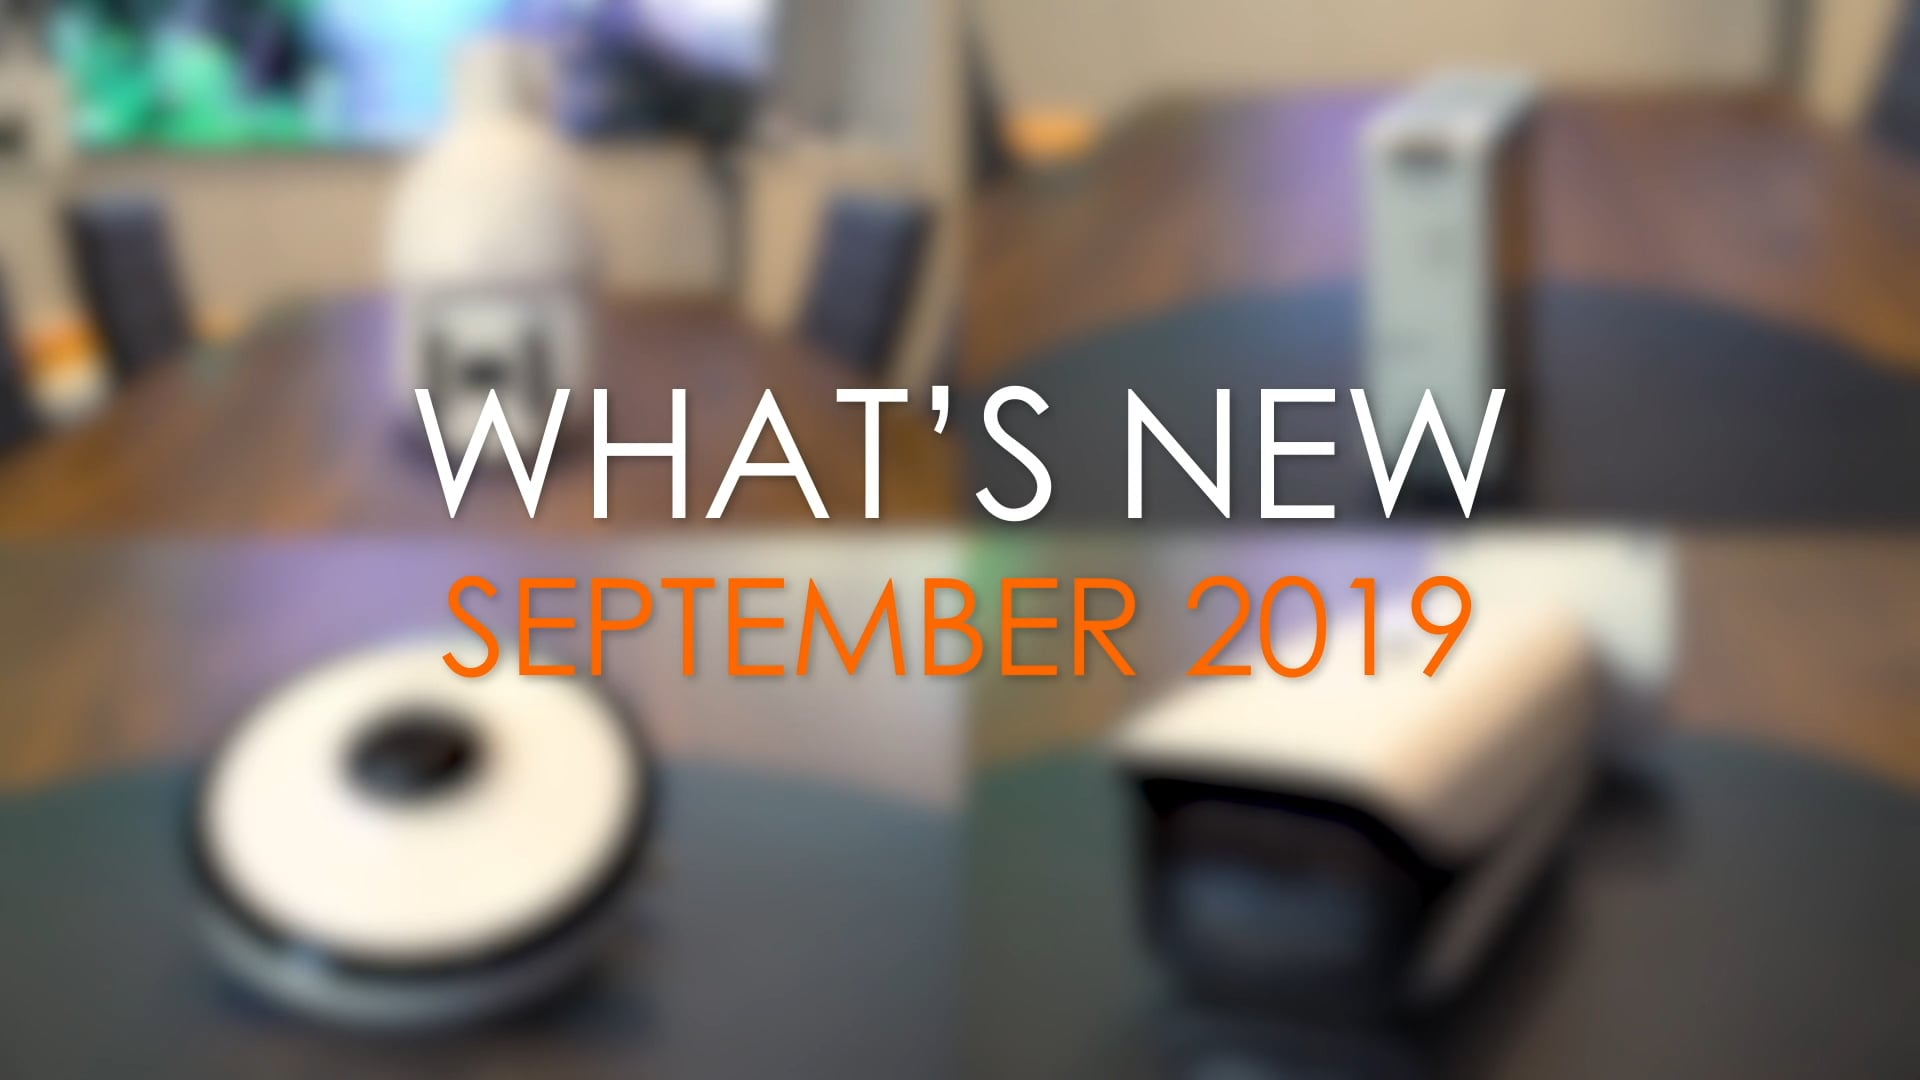 What's New This Month - September 2019